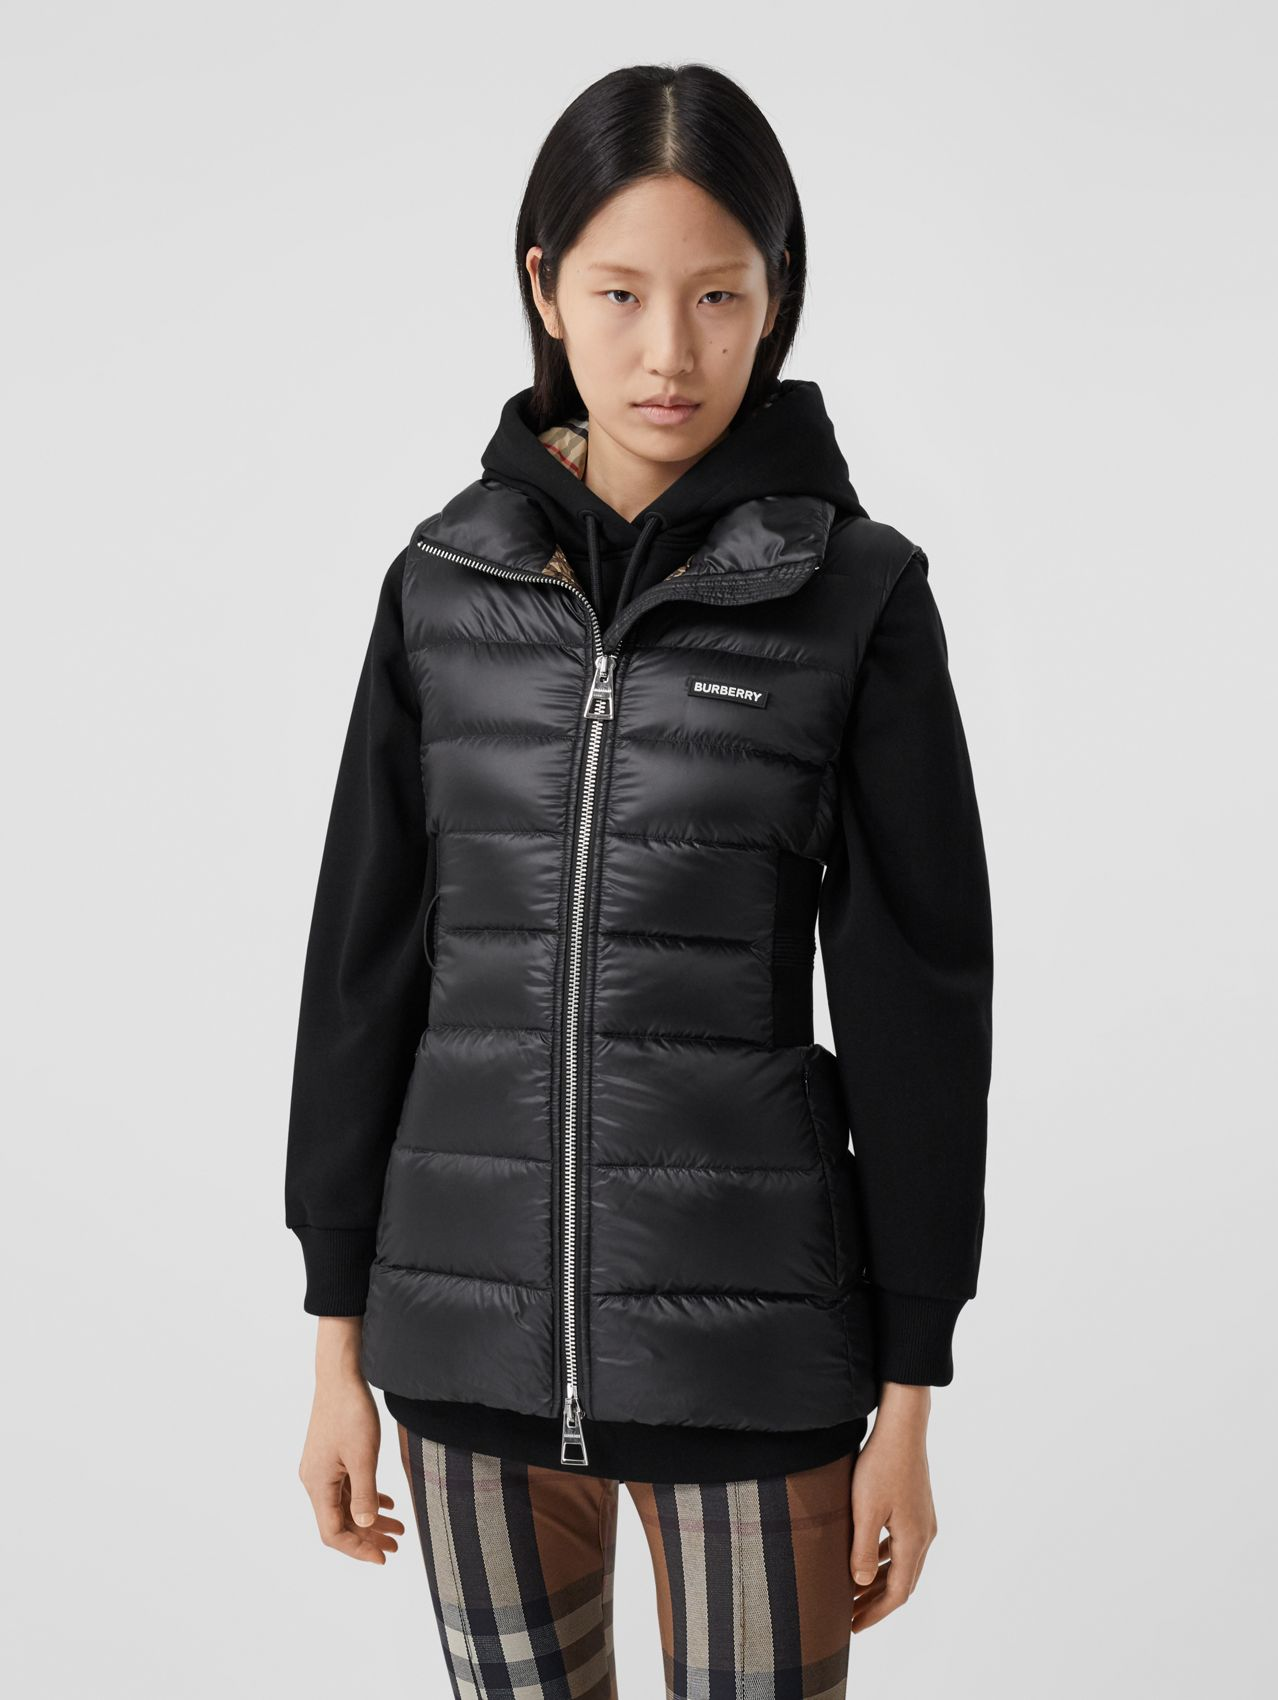 Rib Knit Panel ECONYL® Puffer Gilet in Black